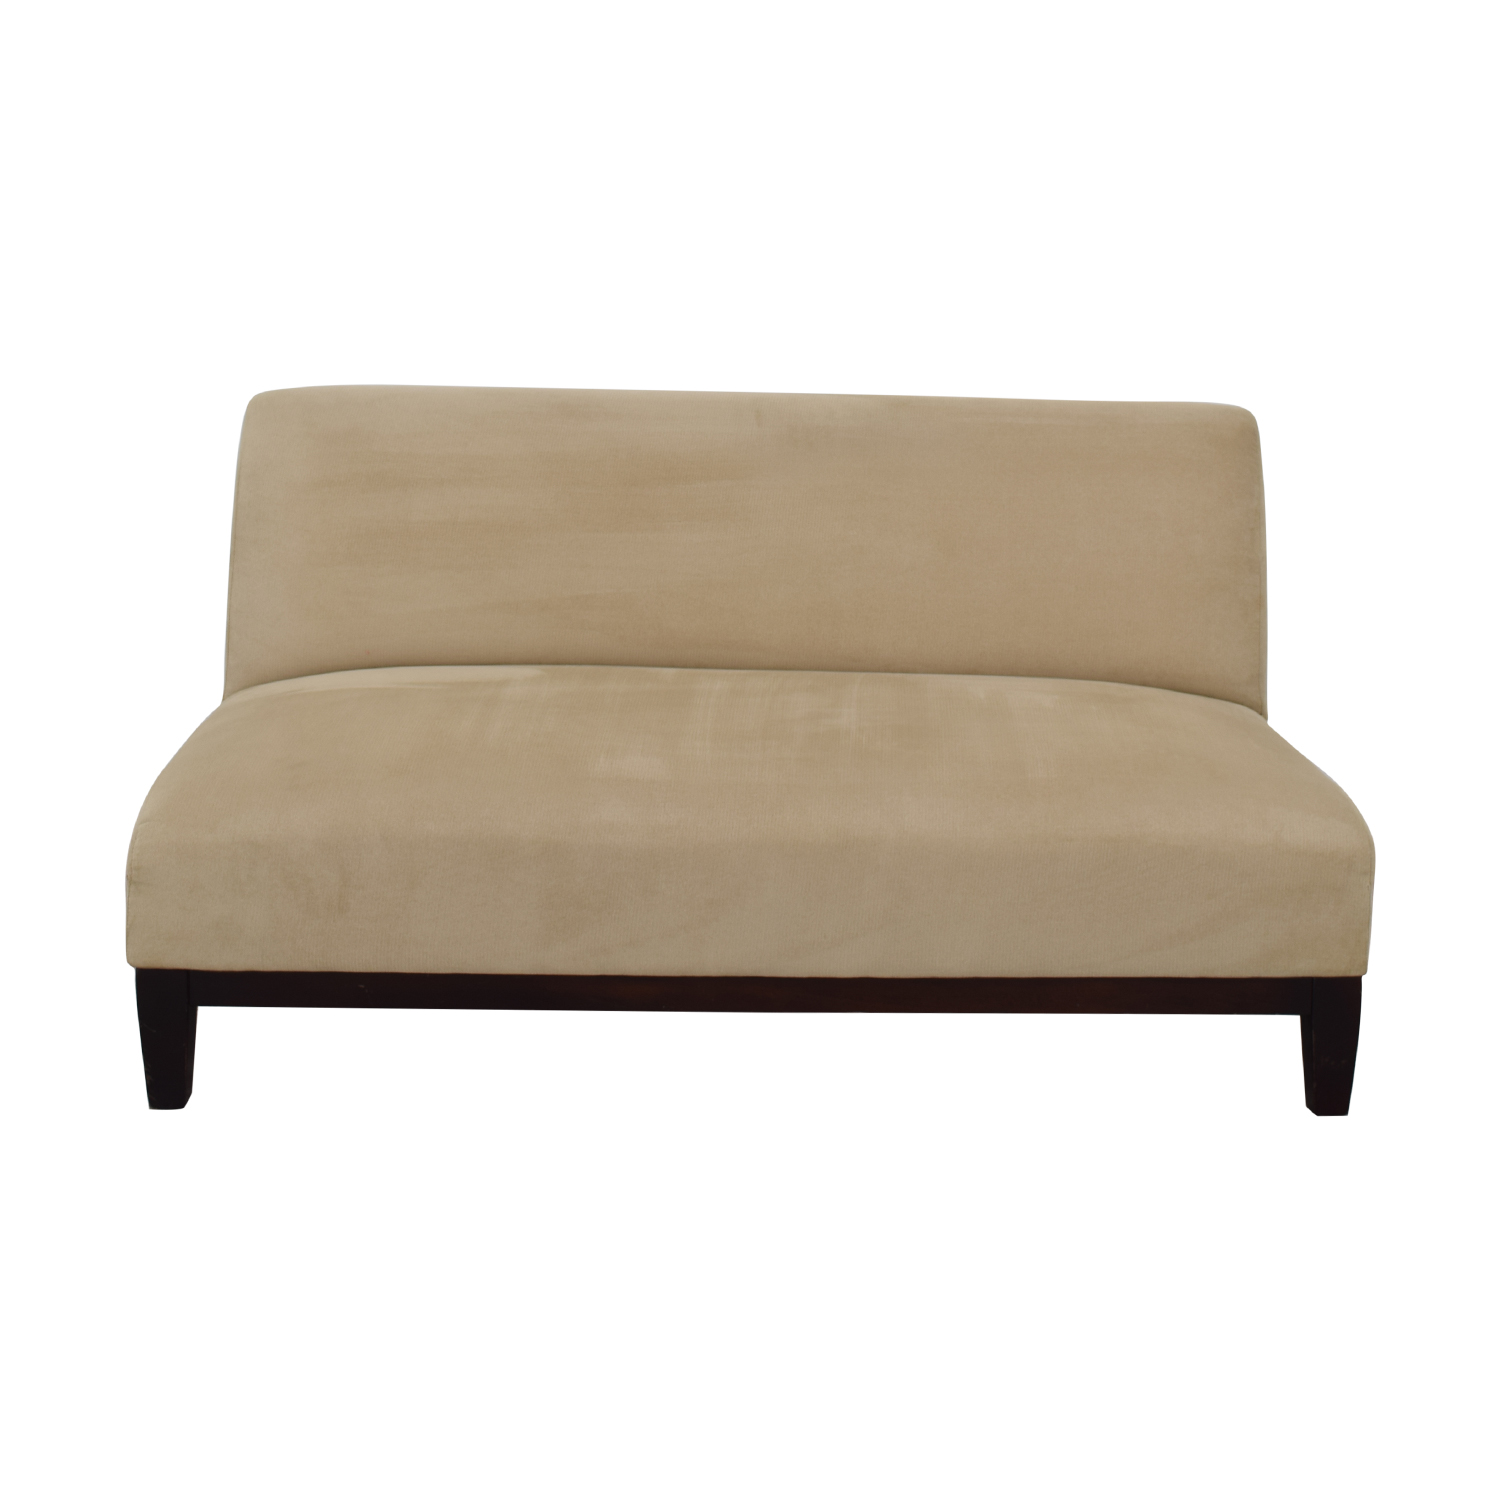 Room & Board Beige Microfiber Armless Loveseat / Loveseats